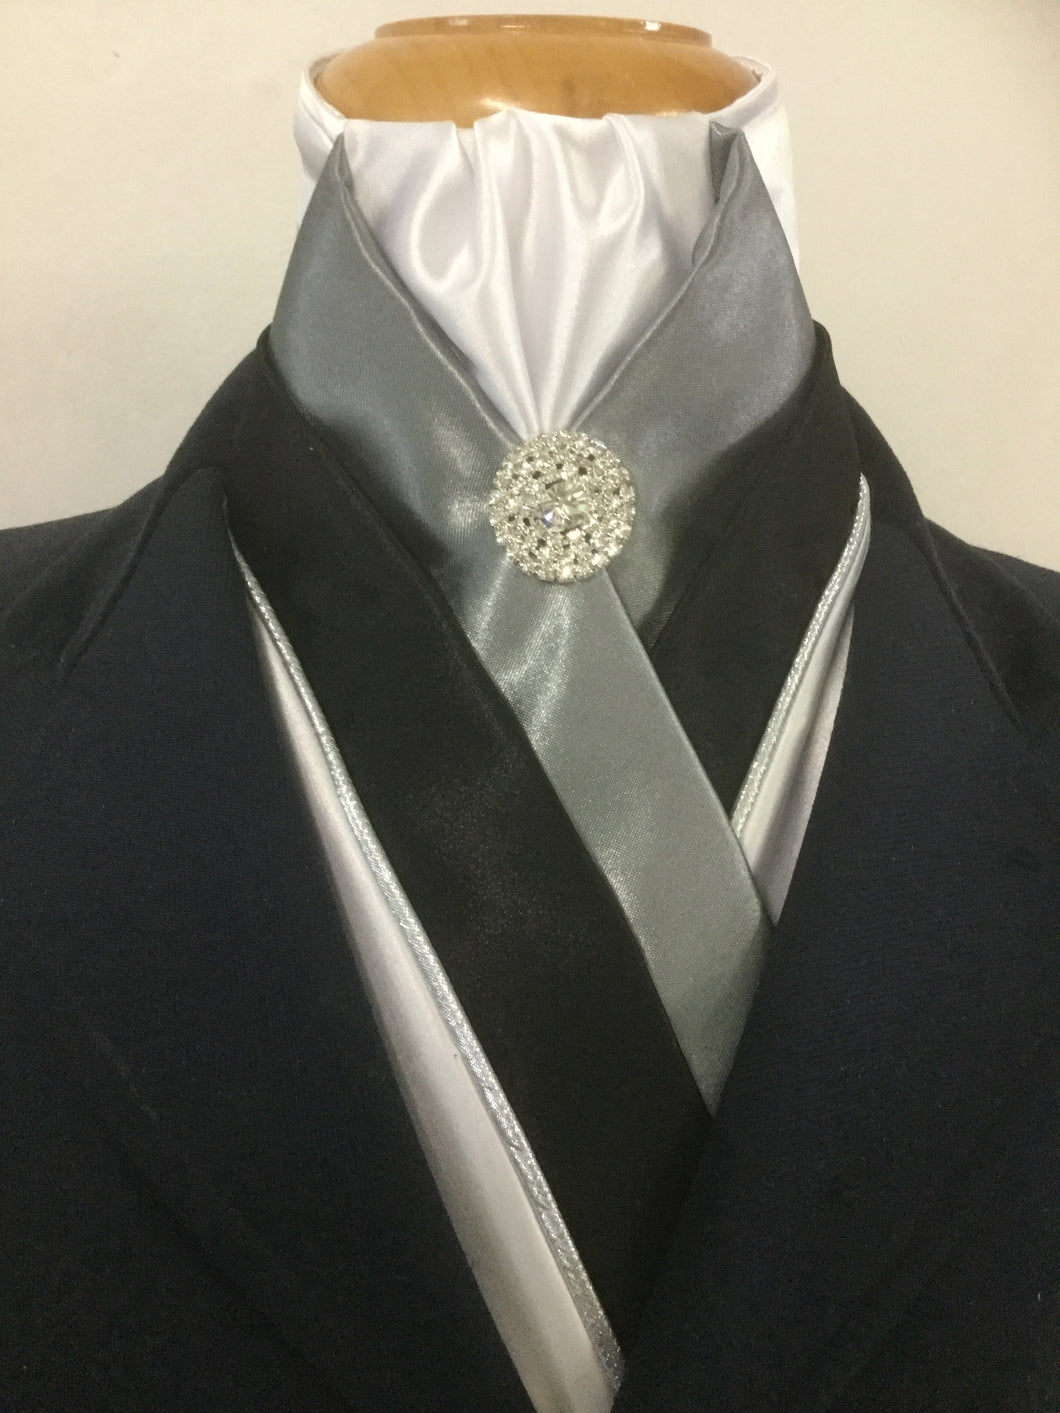 HHD 'The Royal' Pretied Stock Tie White, Grey & Black